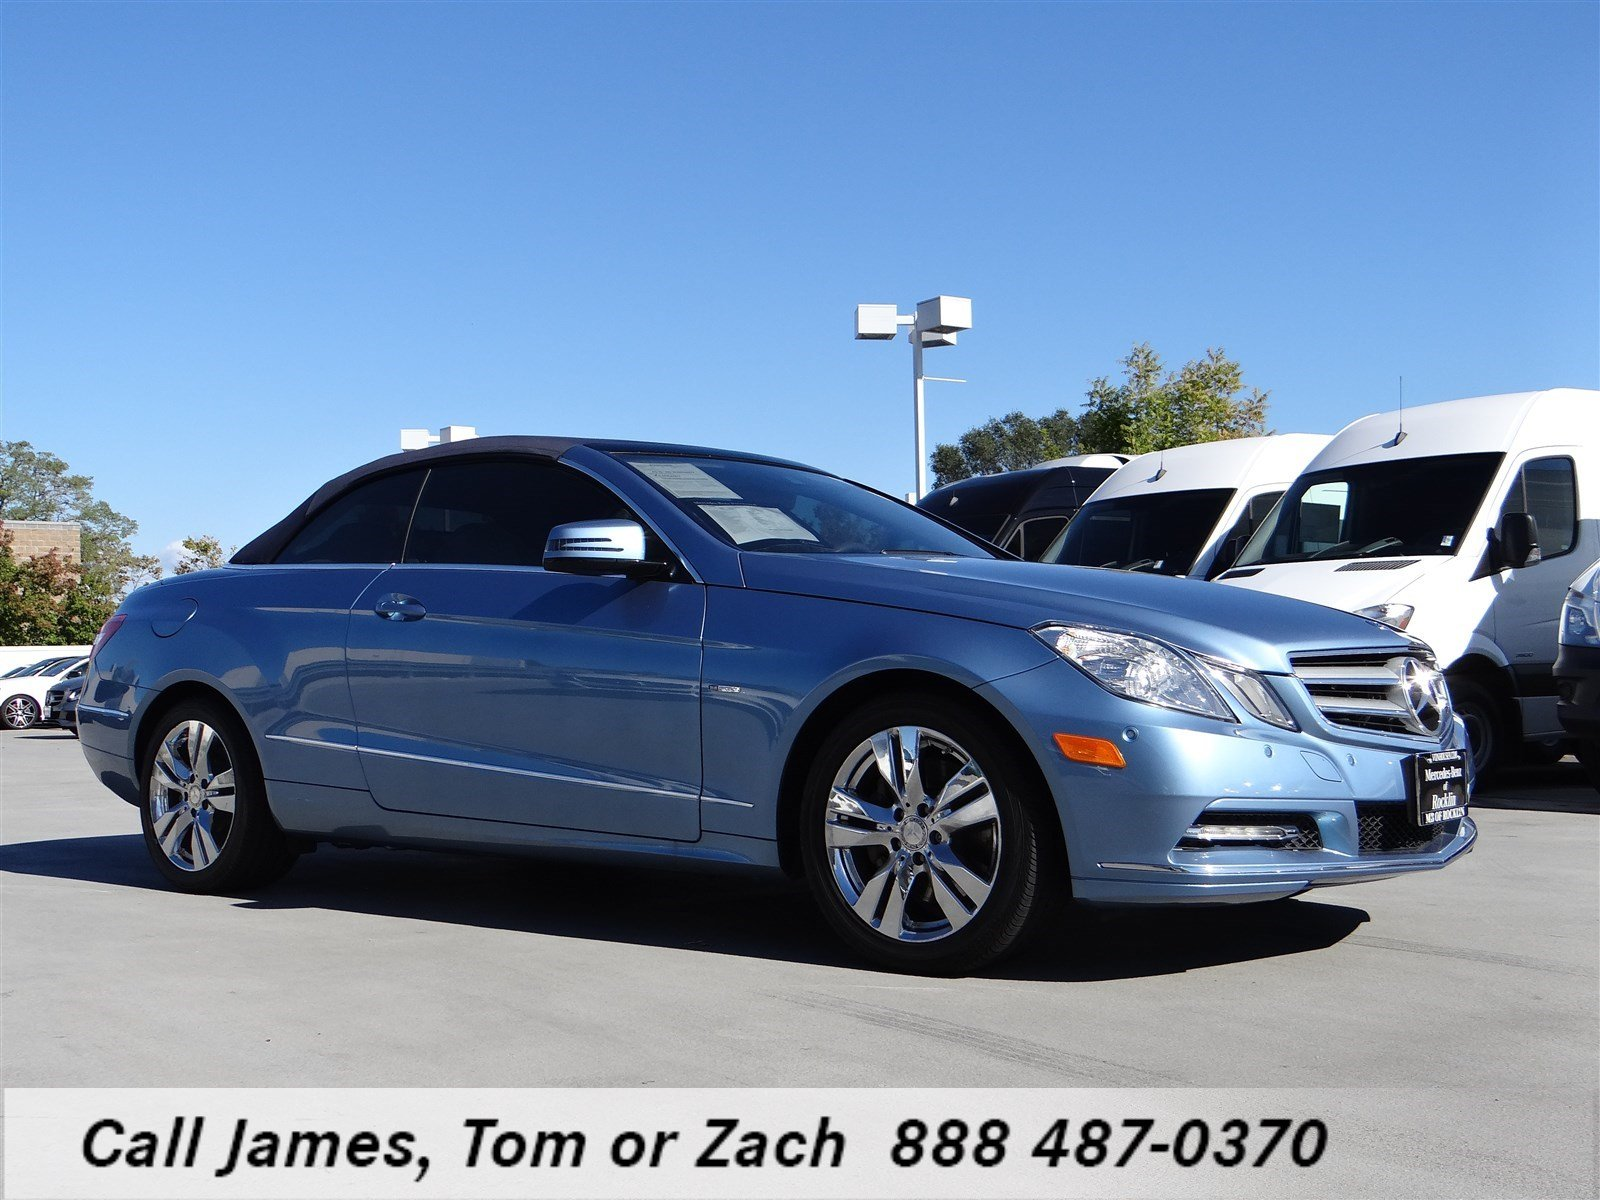 Pre owned 2012 mercedes benz e class e350 cabriolet in for 2012 mercedes benz e class e350